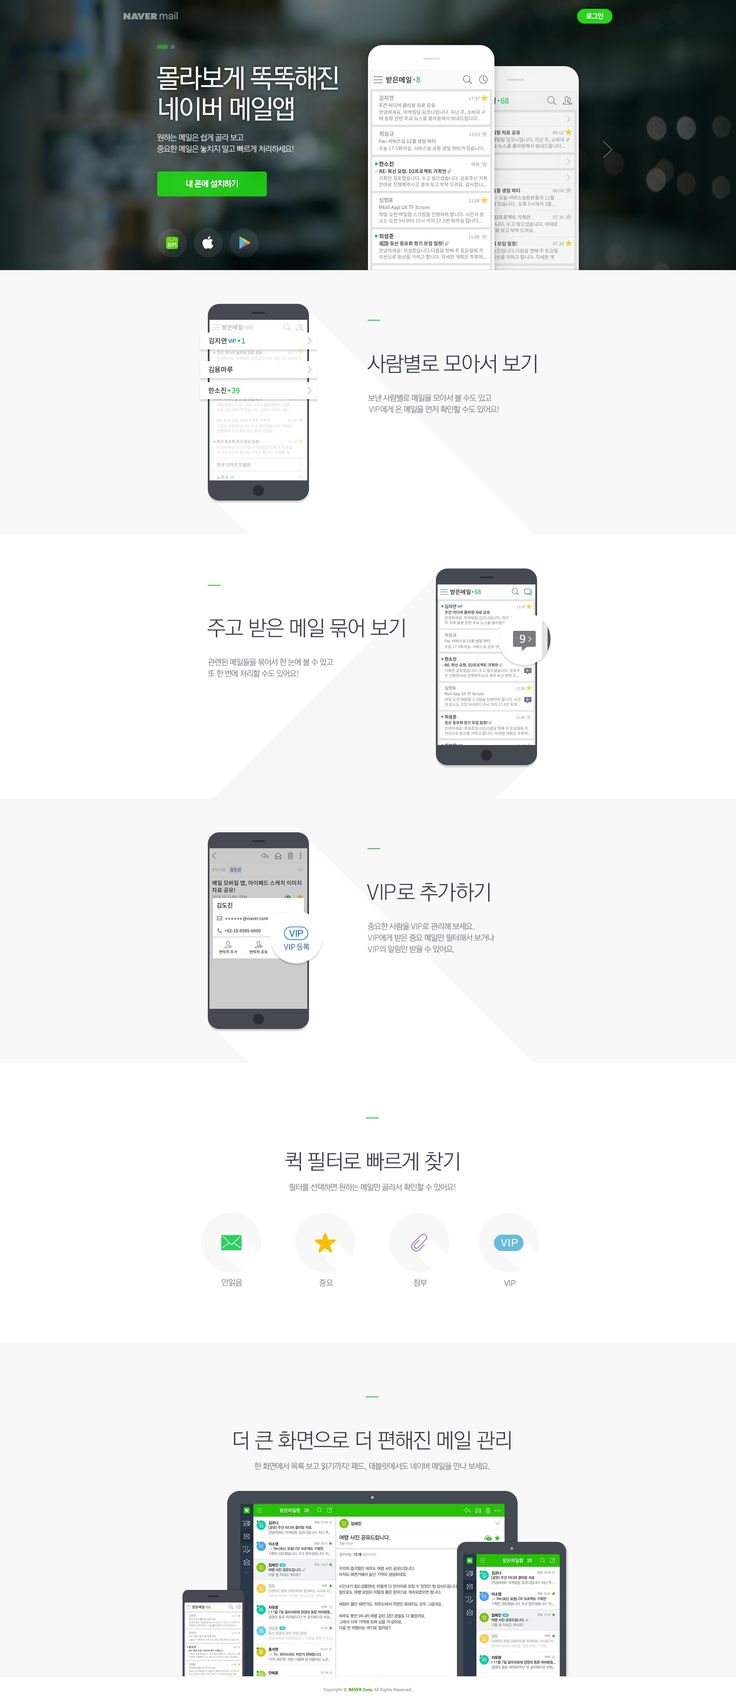 naver mail mobile promotion webpage rink. http://mail.naver.com/mobile_promotion